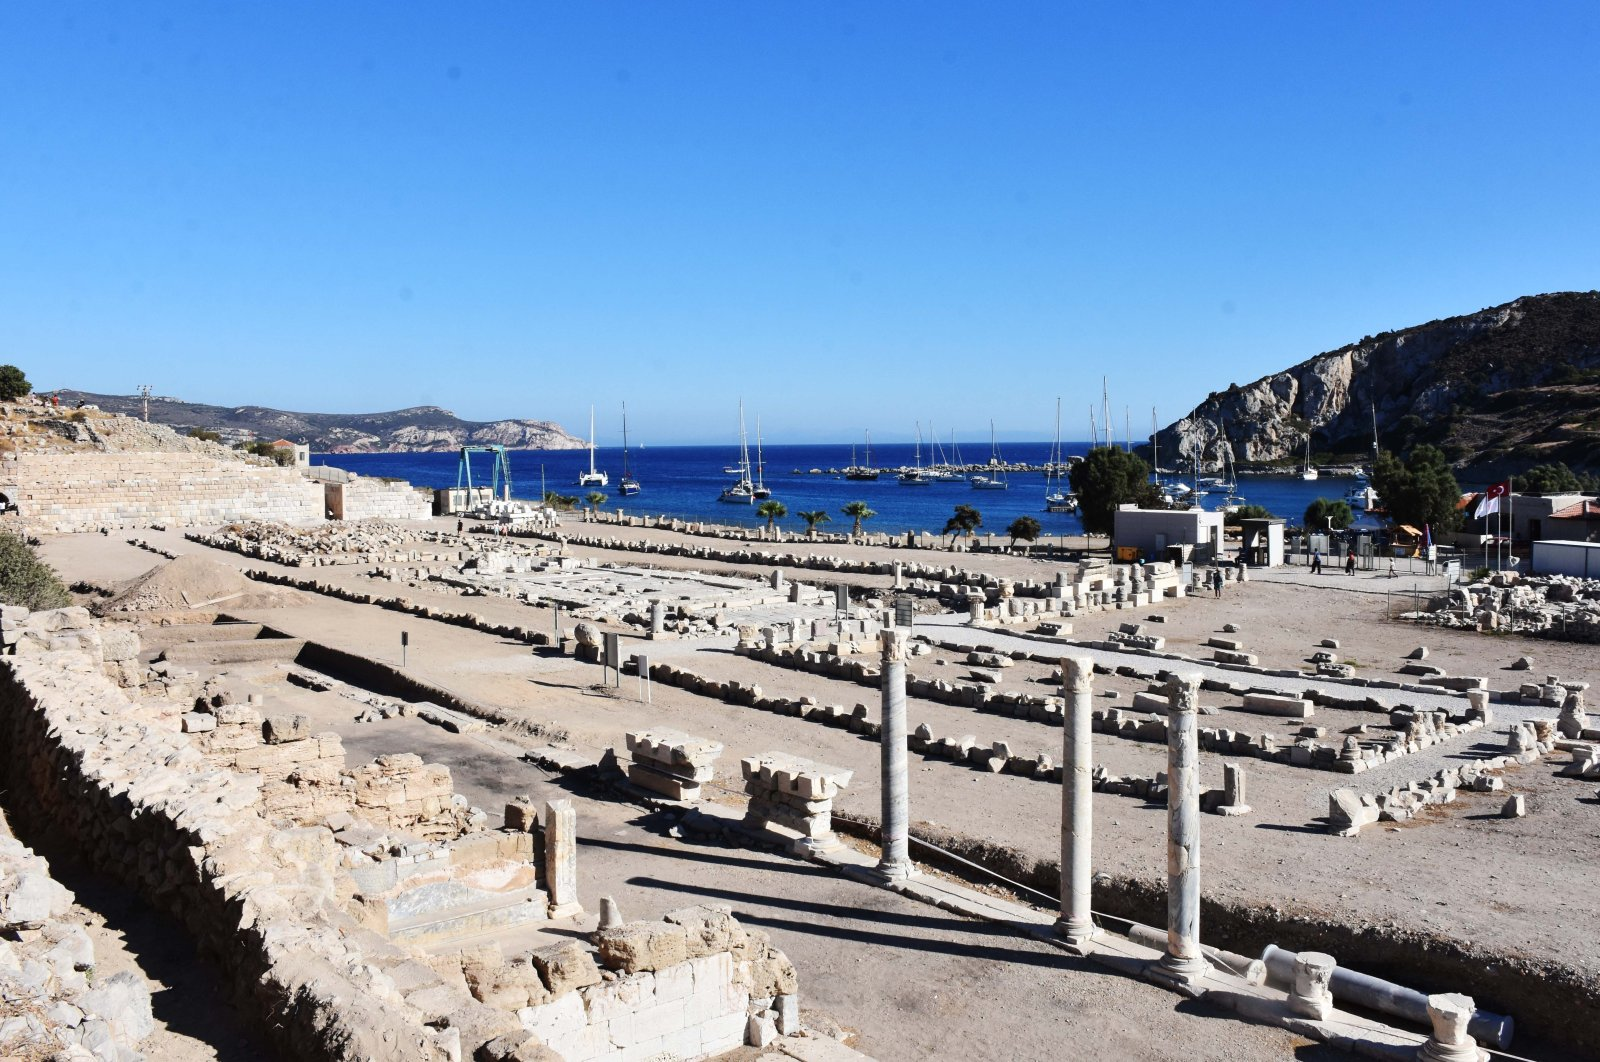 A general view shows the historical ruins in the ancient city of Knidos, in Muğla province, southwestern Turkey, Sept. 6, 2020. (AA Photo)